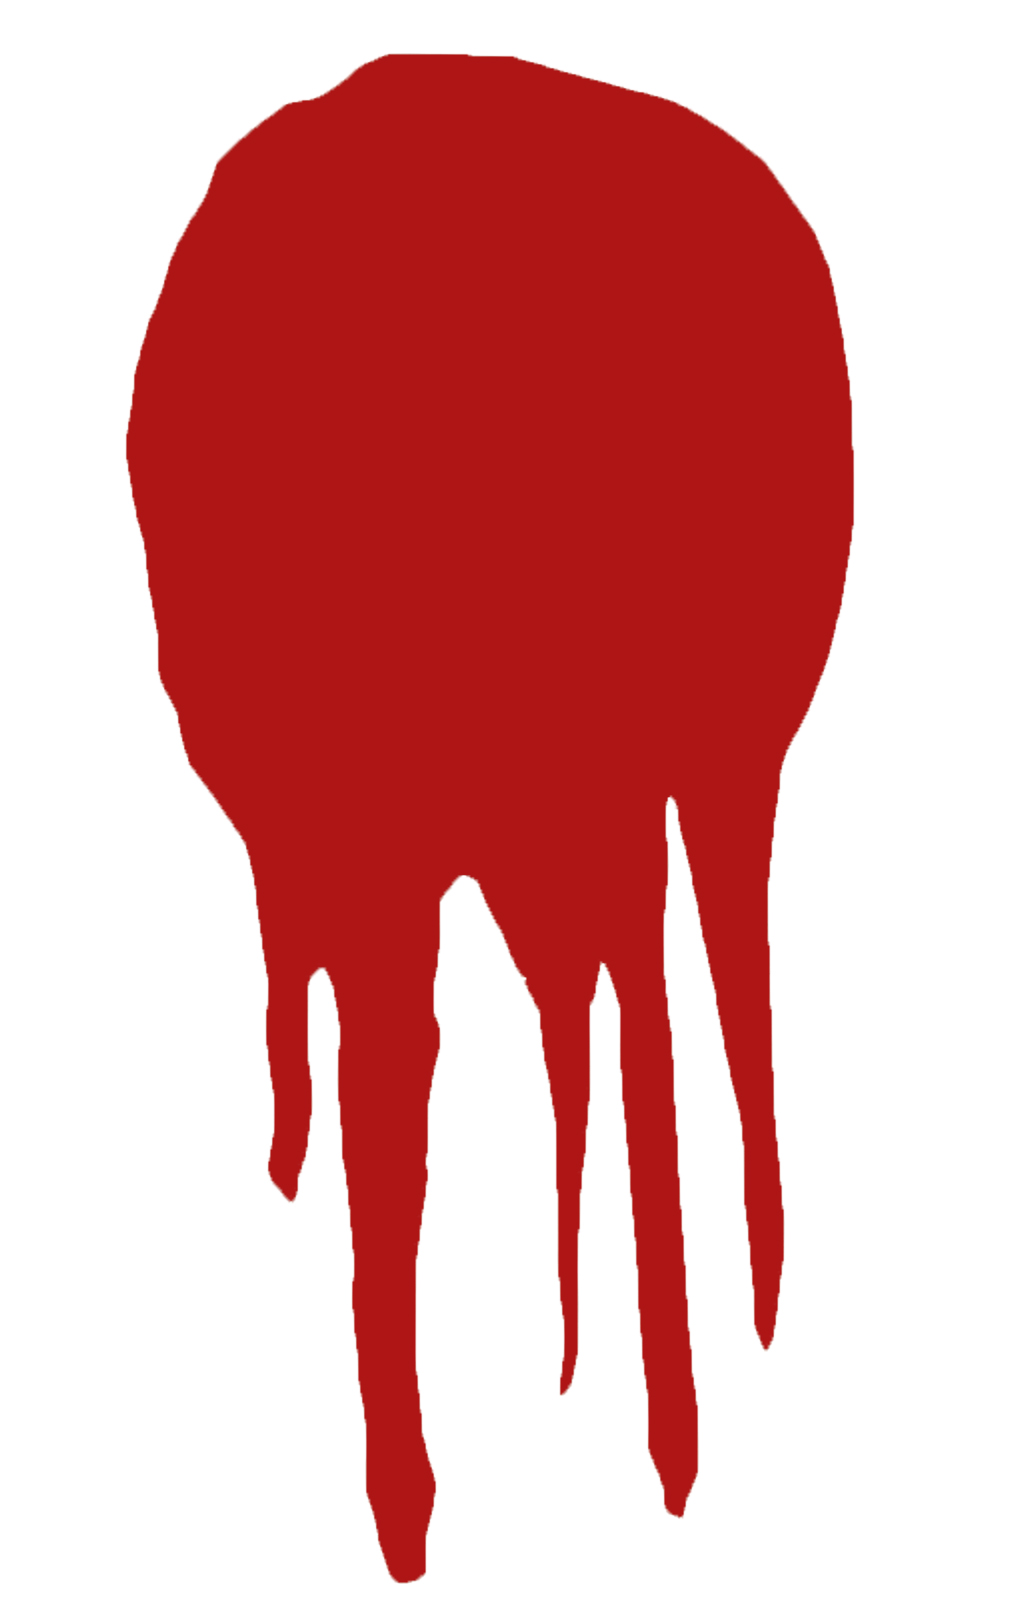 Blood Dripping Drawing : blood, dripping, drawing, Blood, Drips, Cliparts,, Download, Clipart, Library